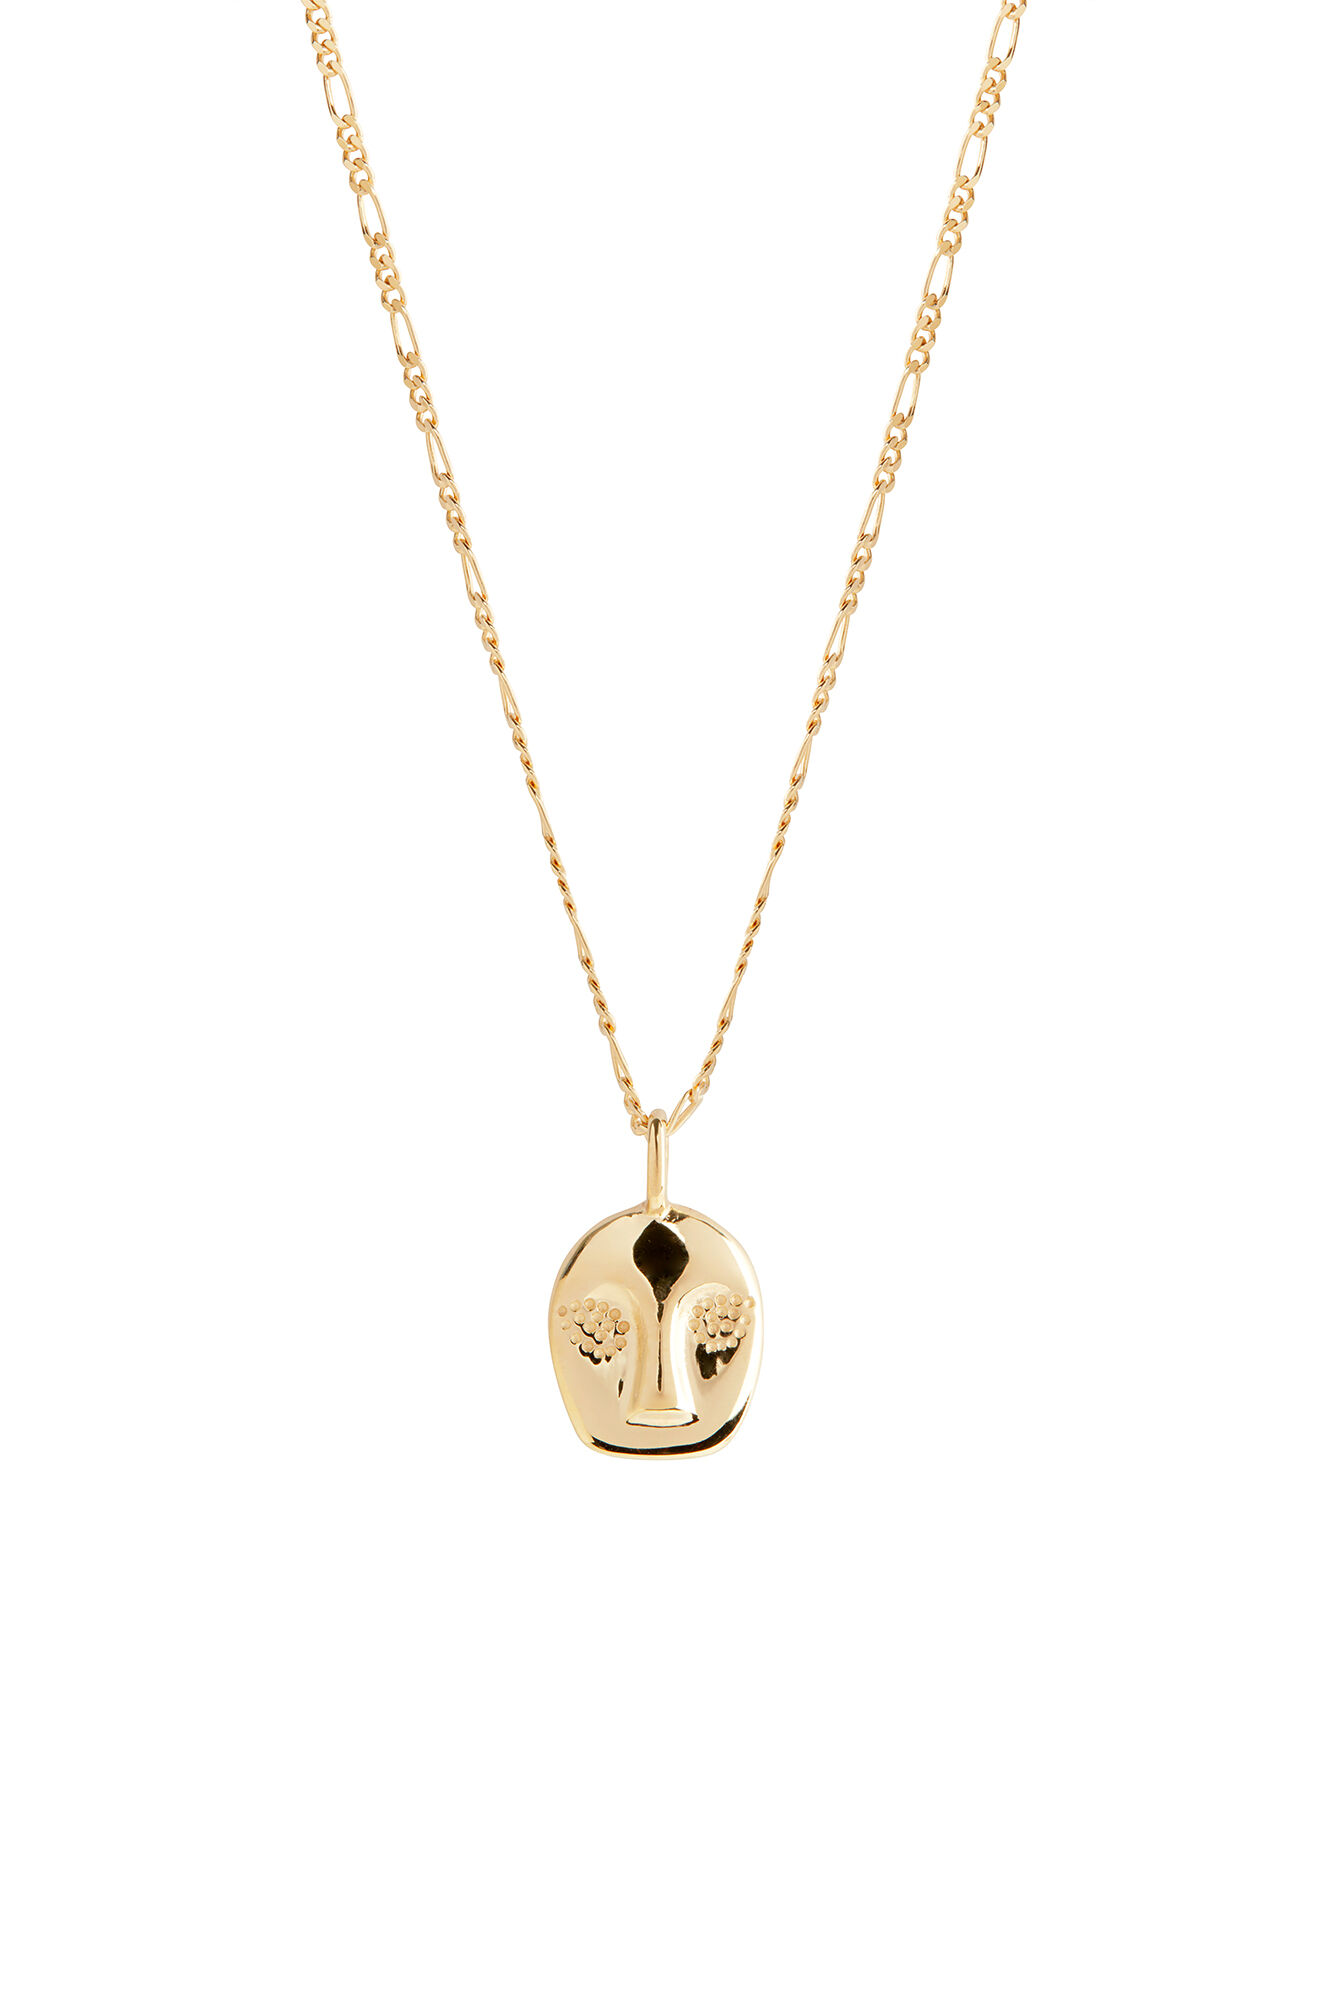 Ray necklace 300368YG, GOLD HP